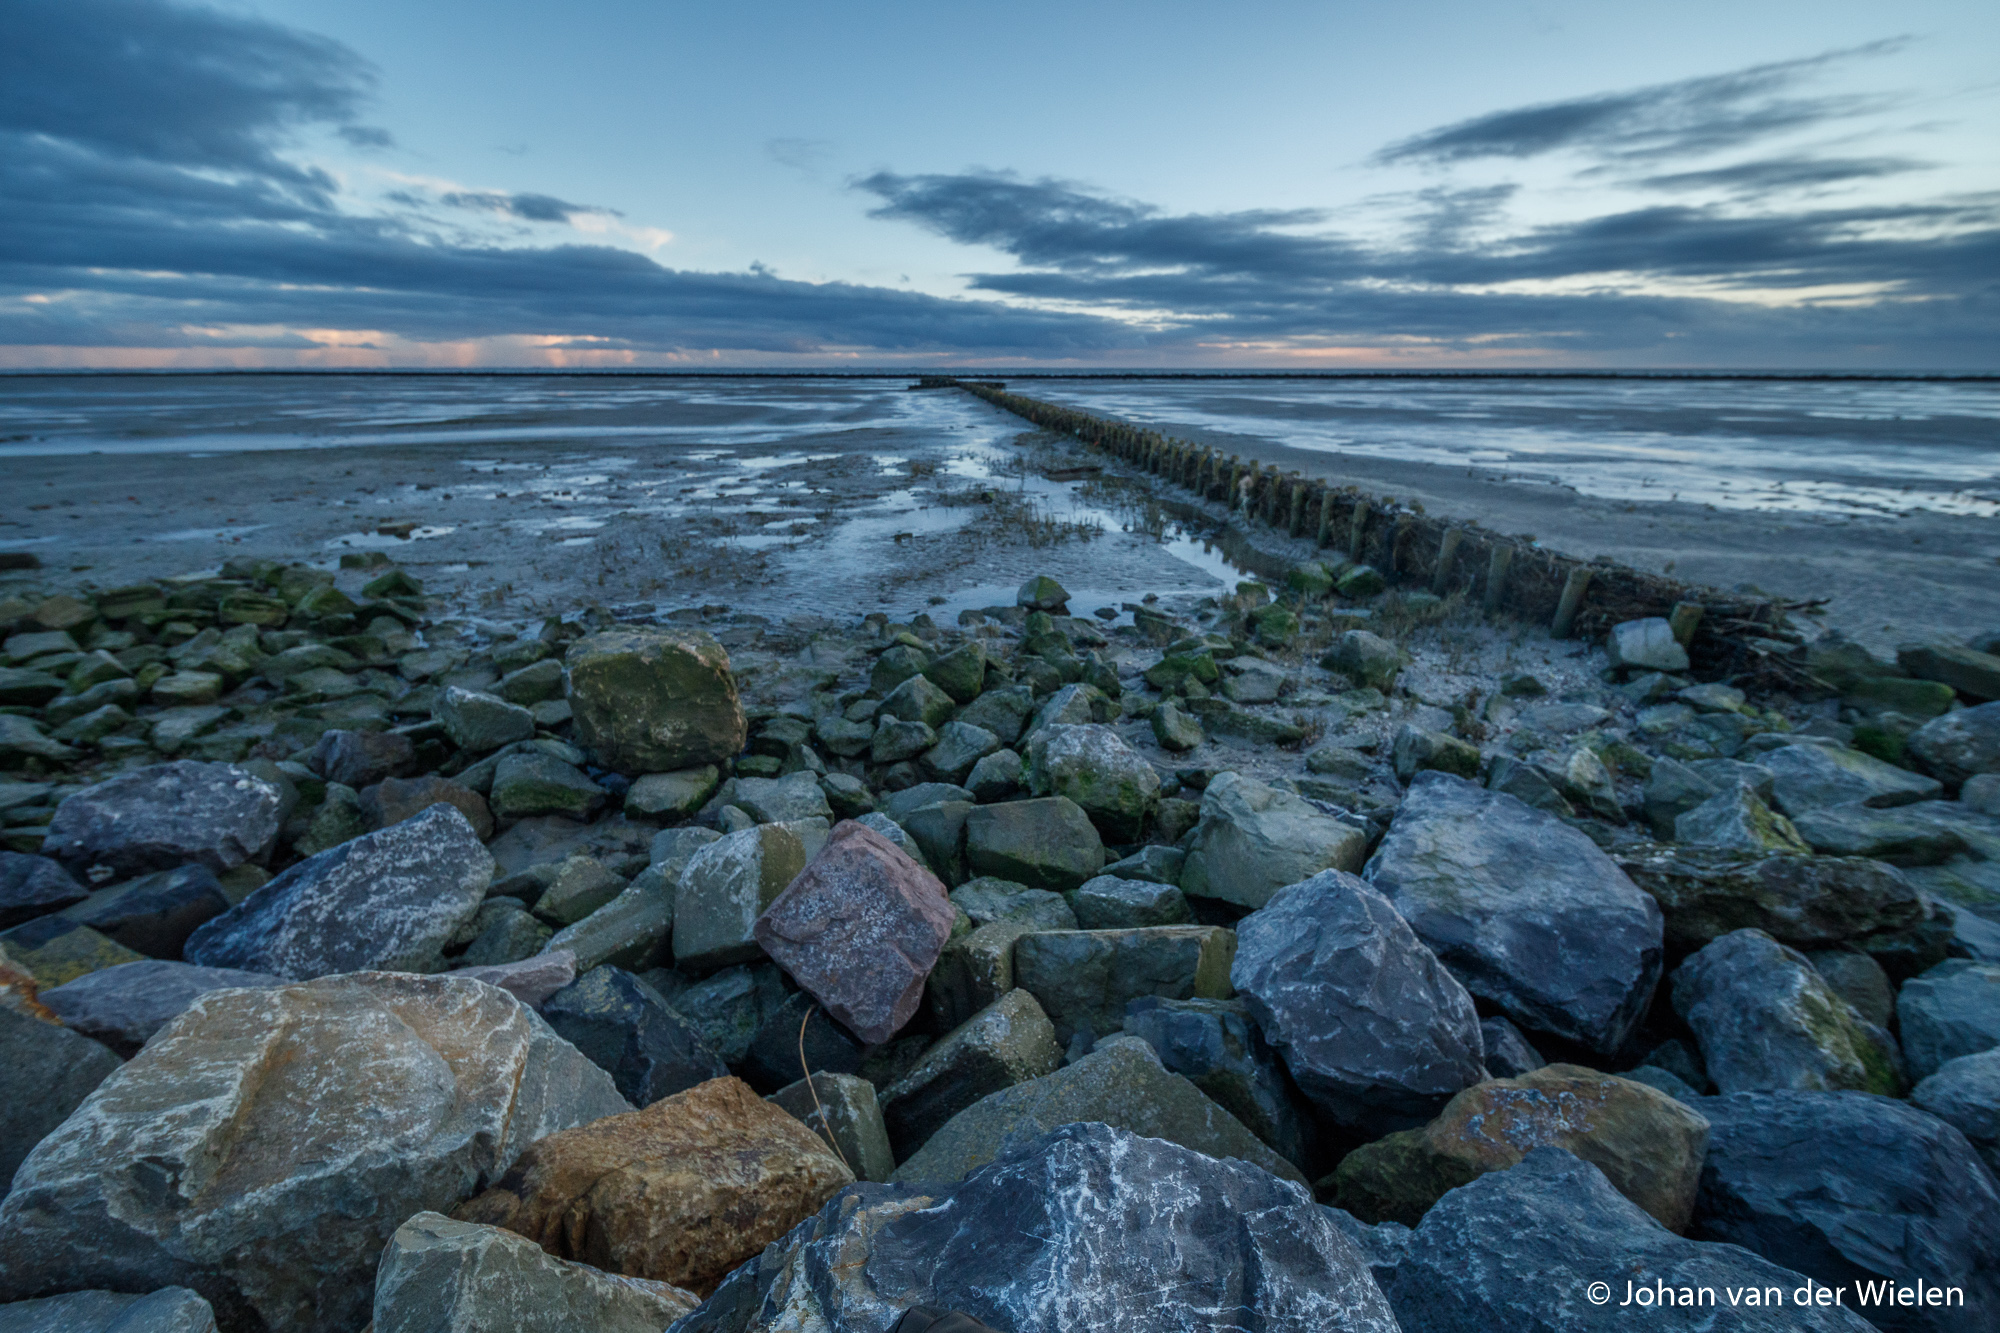 12mm-F2.8/ Photo by Johan van Wielen